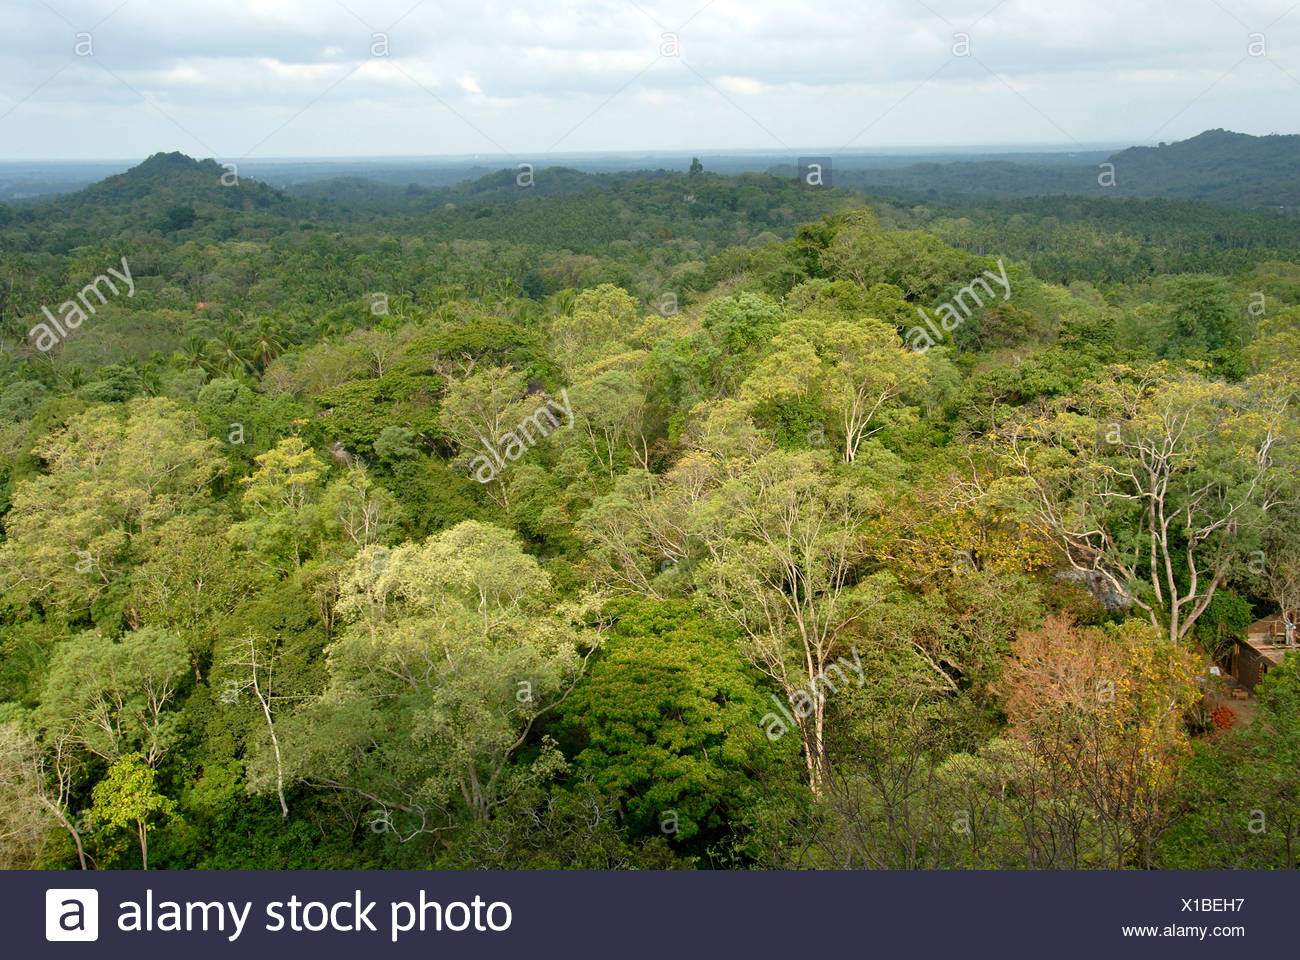 View from the Temple Mount Mulkirigala of tropical forests, deciduous trees, Ceylon, Sri Lanka, South Asia - Stock Image